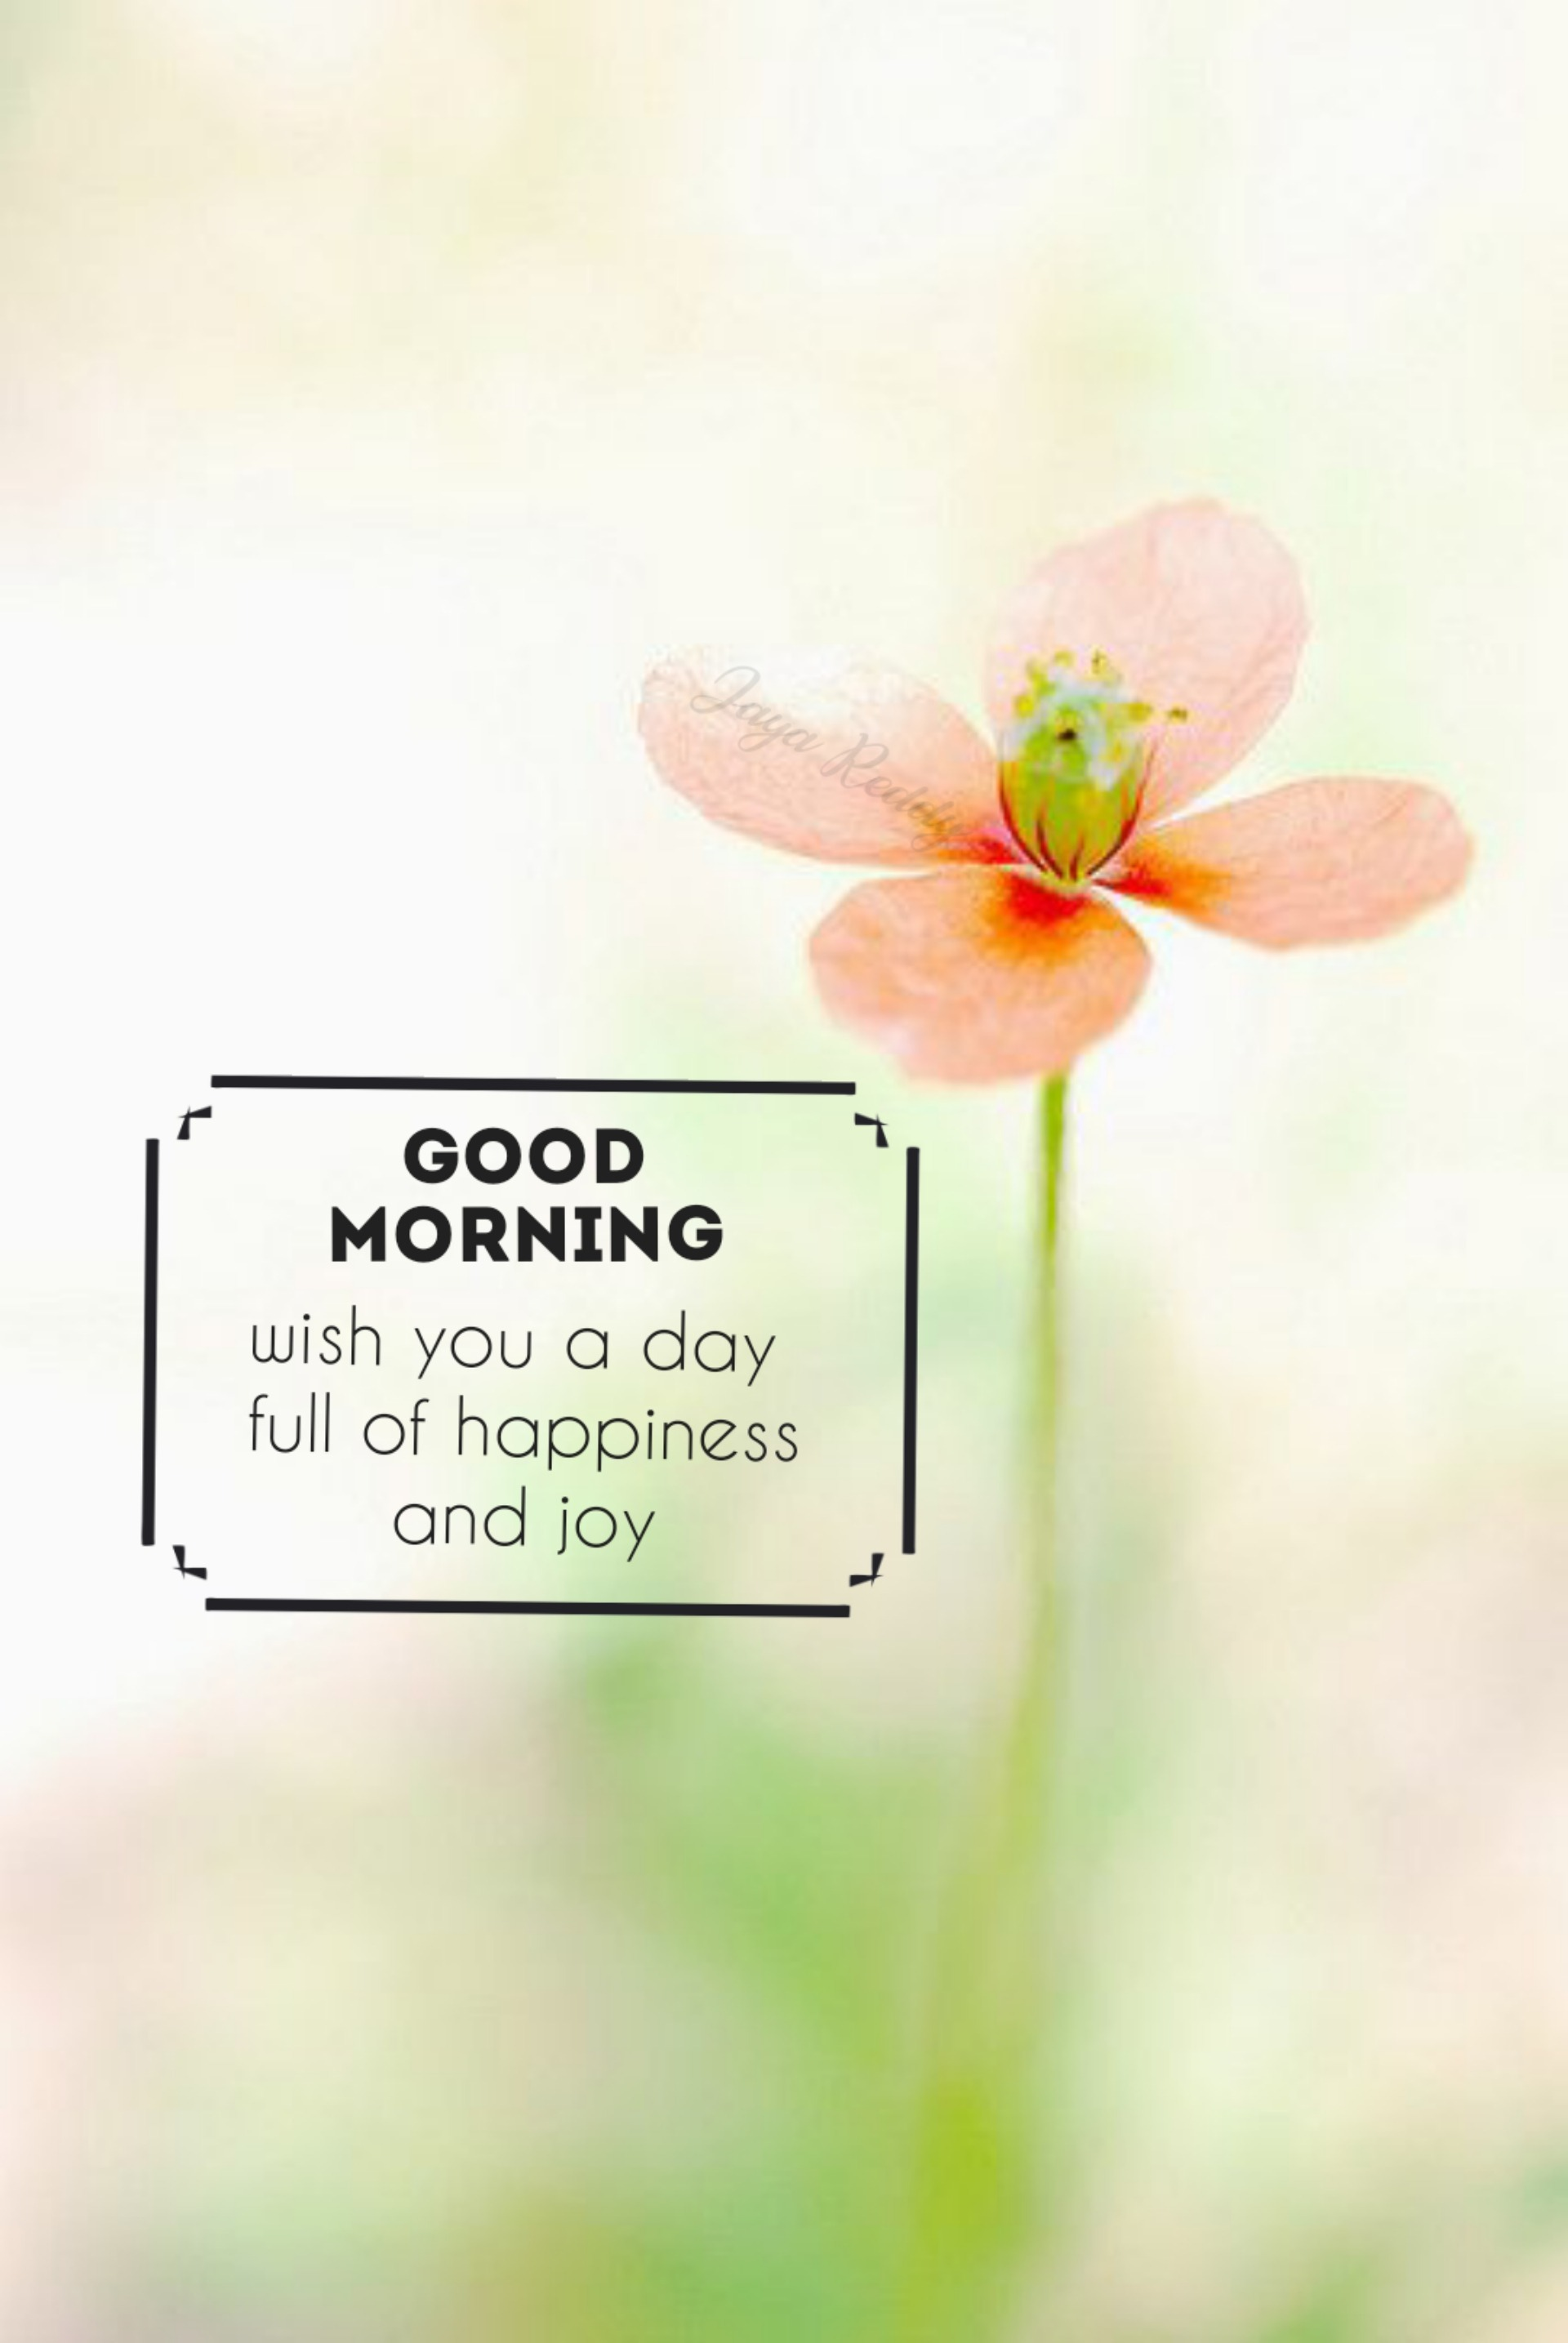 Wish You A Day Full Of Happiness   DesiComments.com